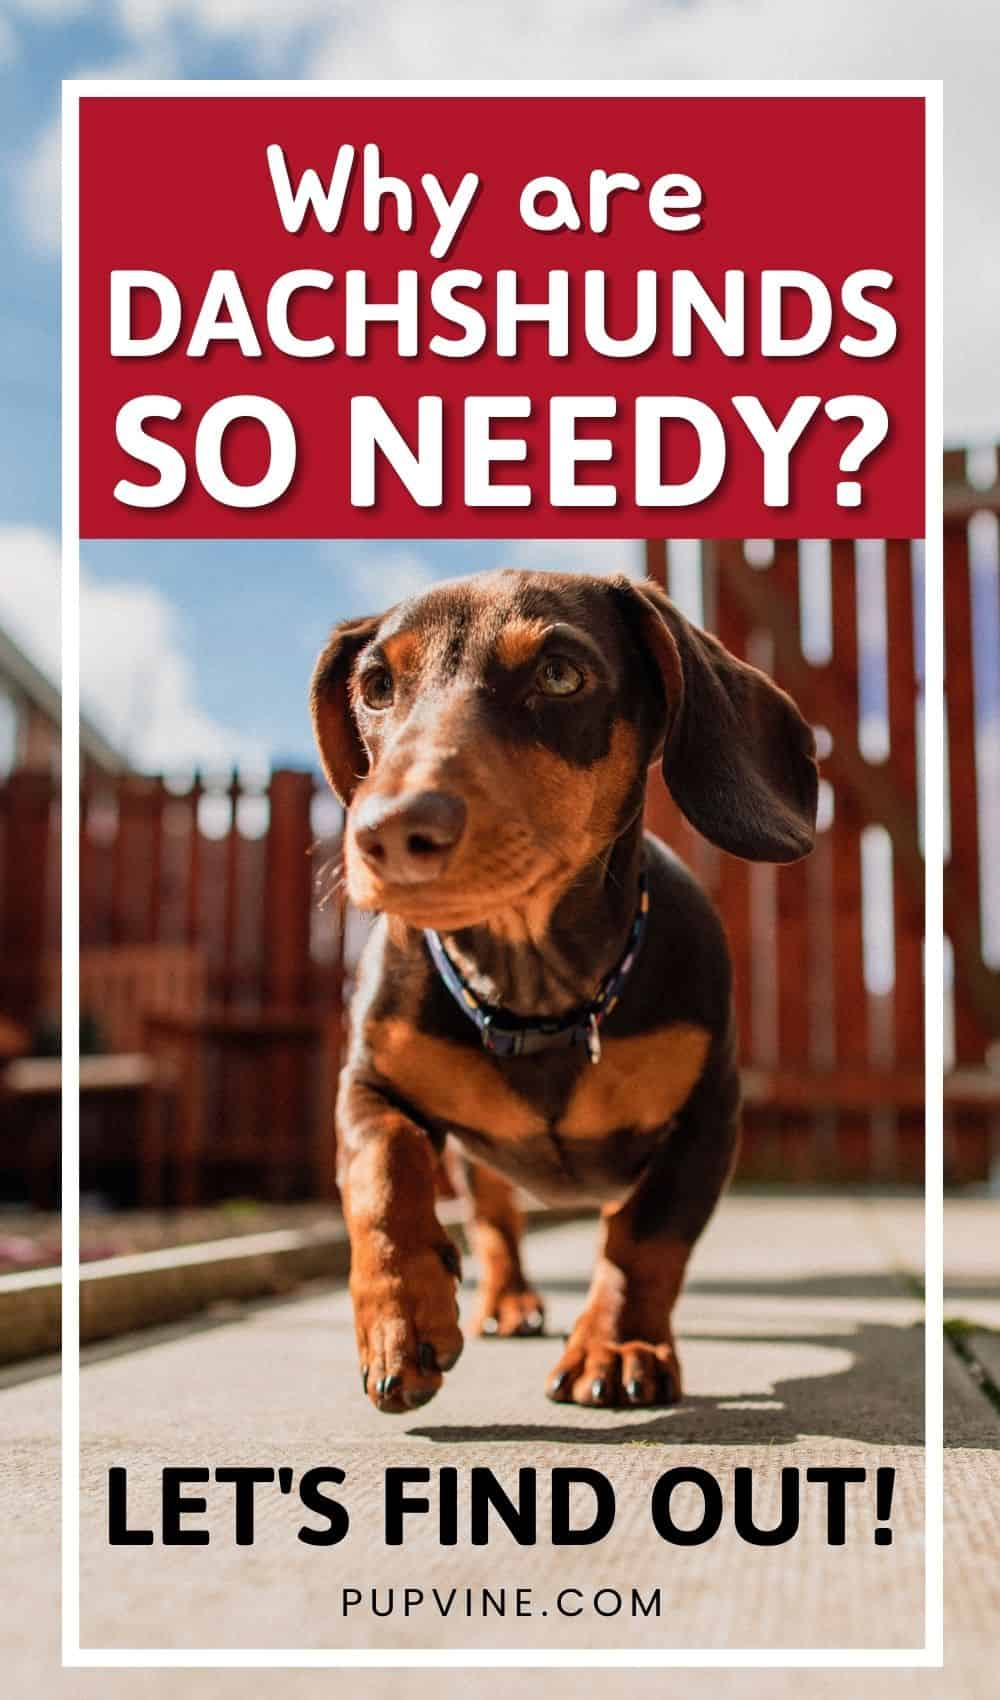 Why Are Dachshunds So Needy Let's Find Out!